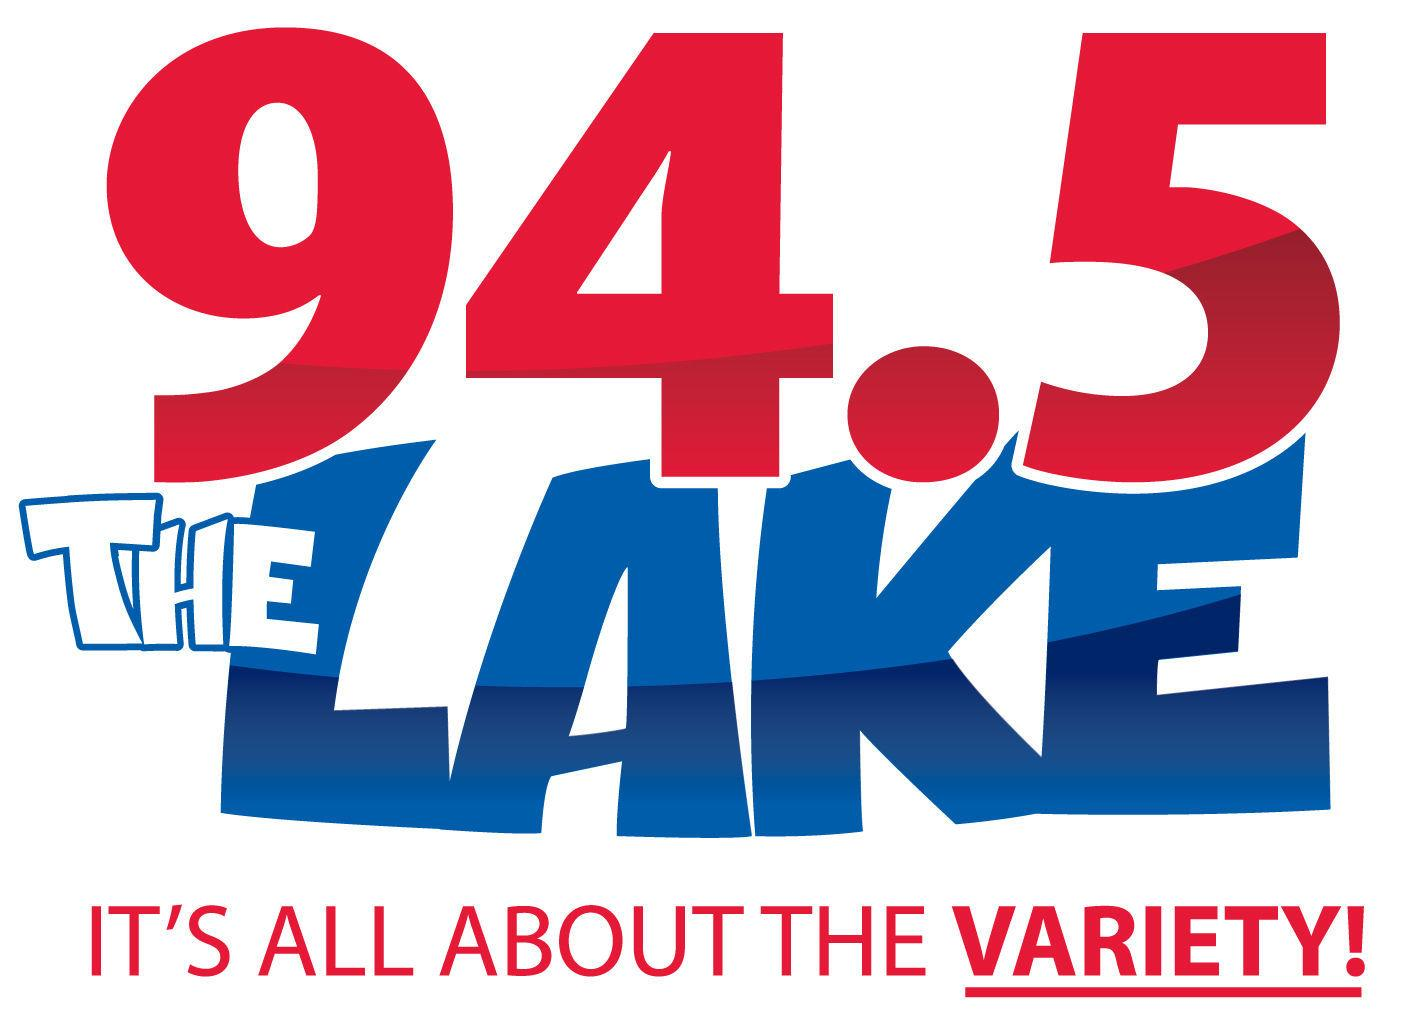 Radio station owners 'surprised' by 92.1 FM's new name ...